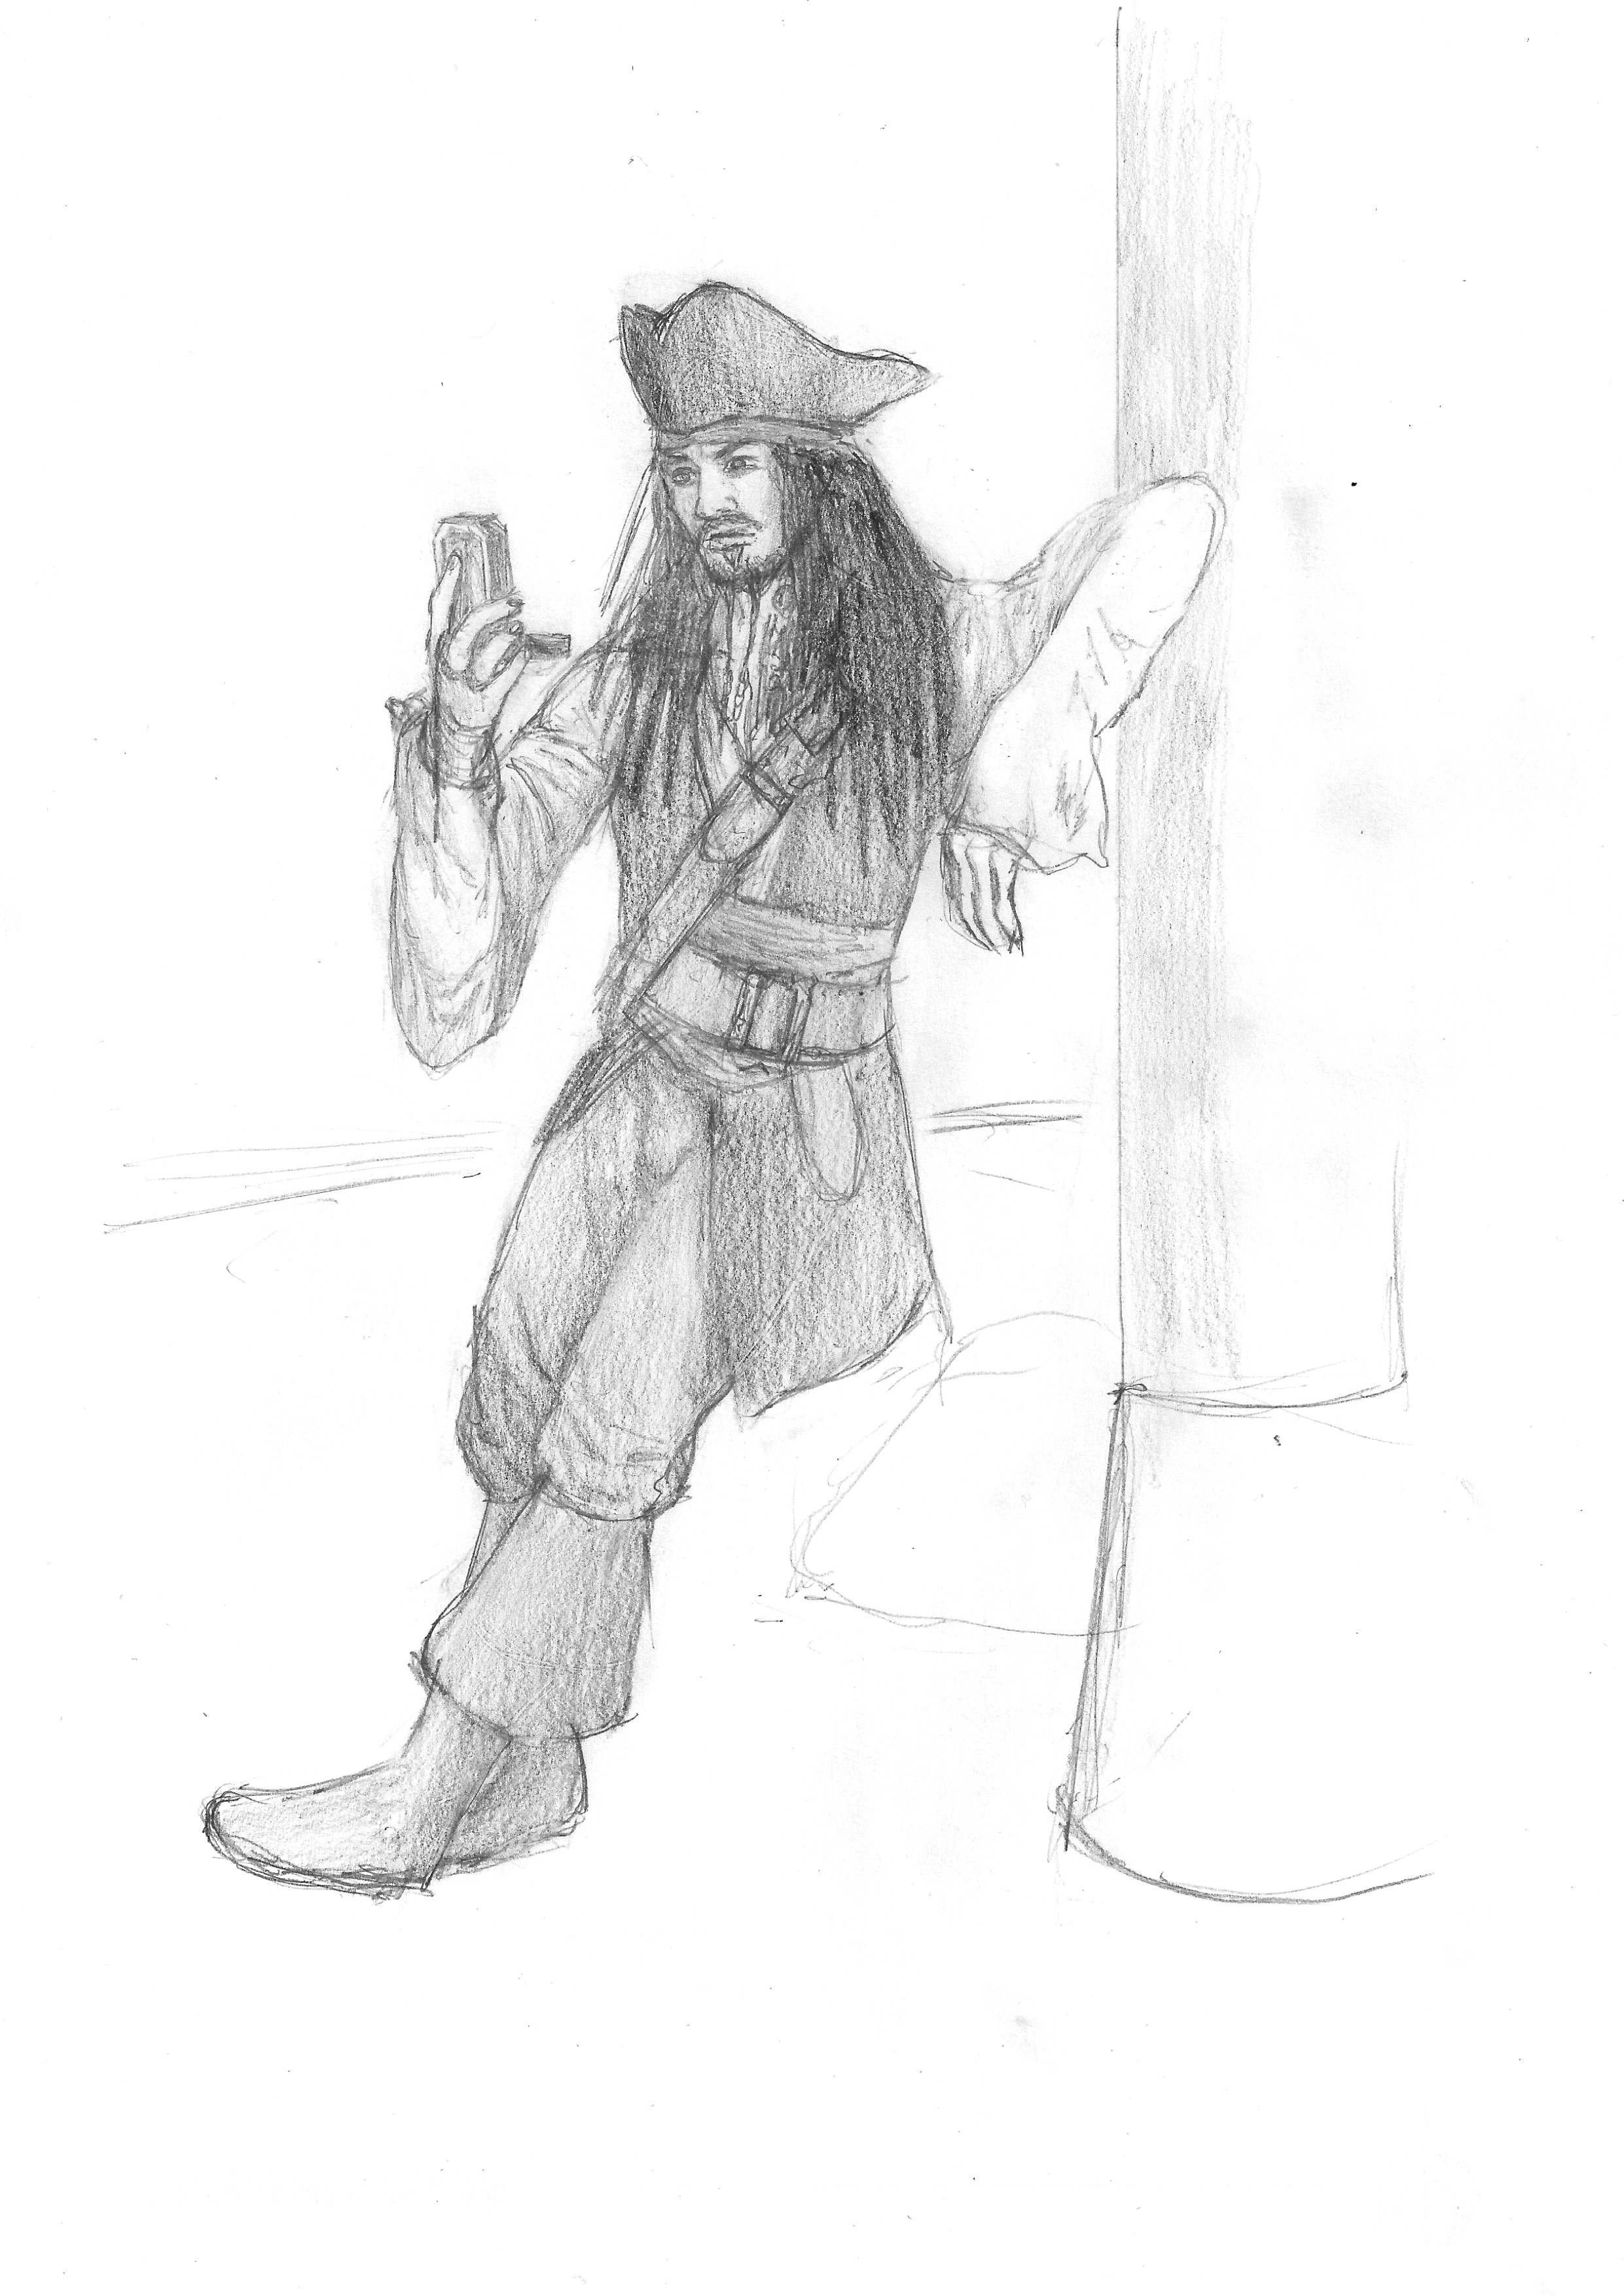 Cpt.Jack Sparrow and his compass